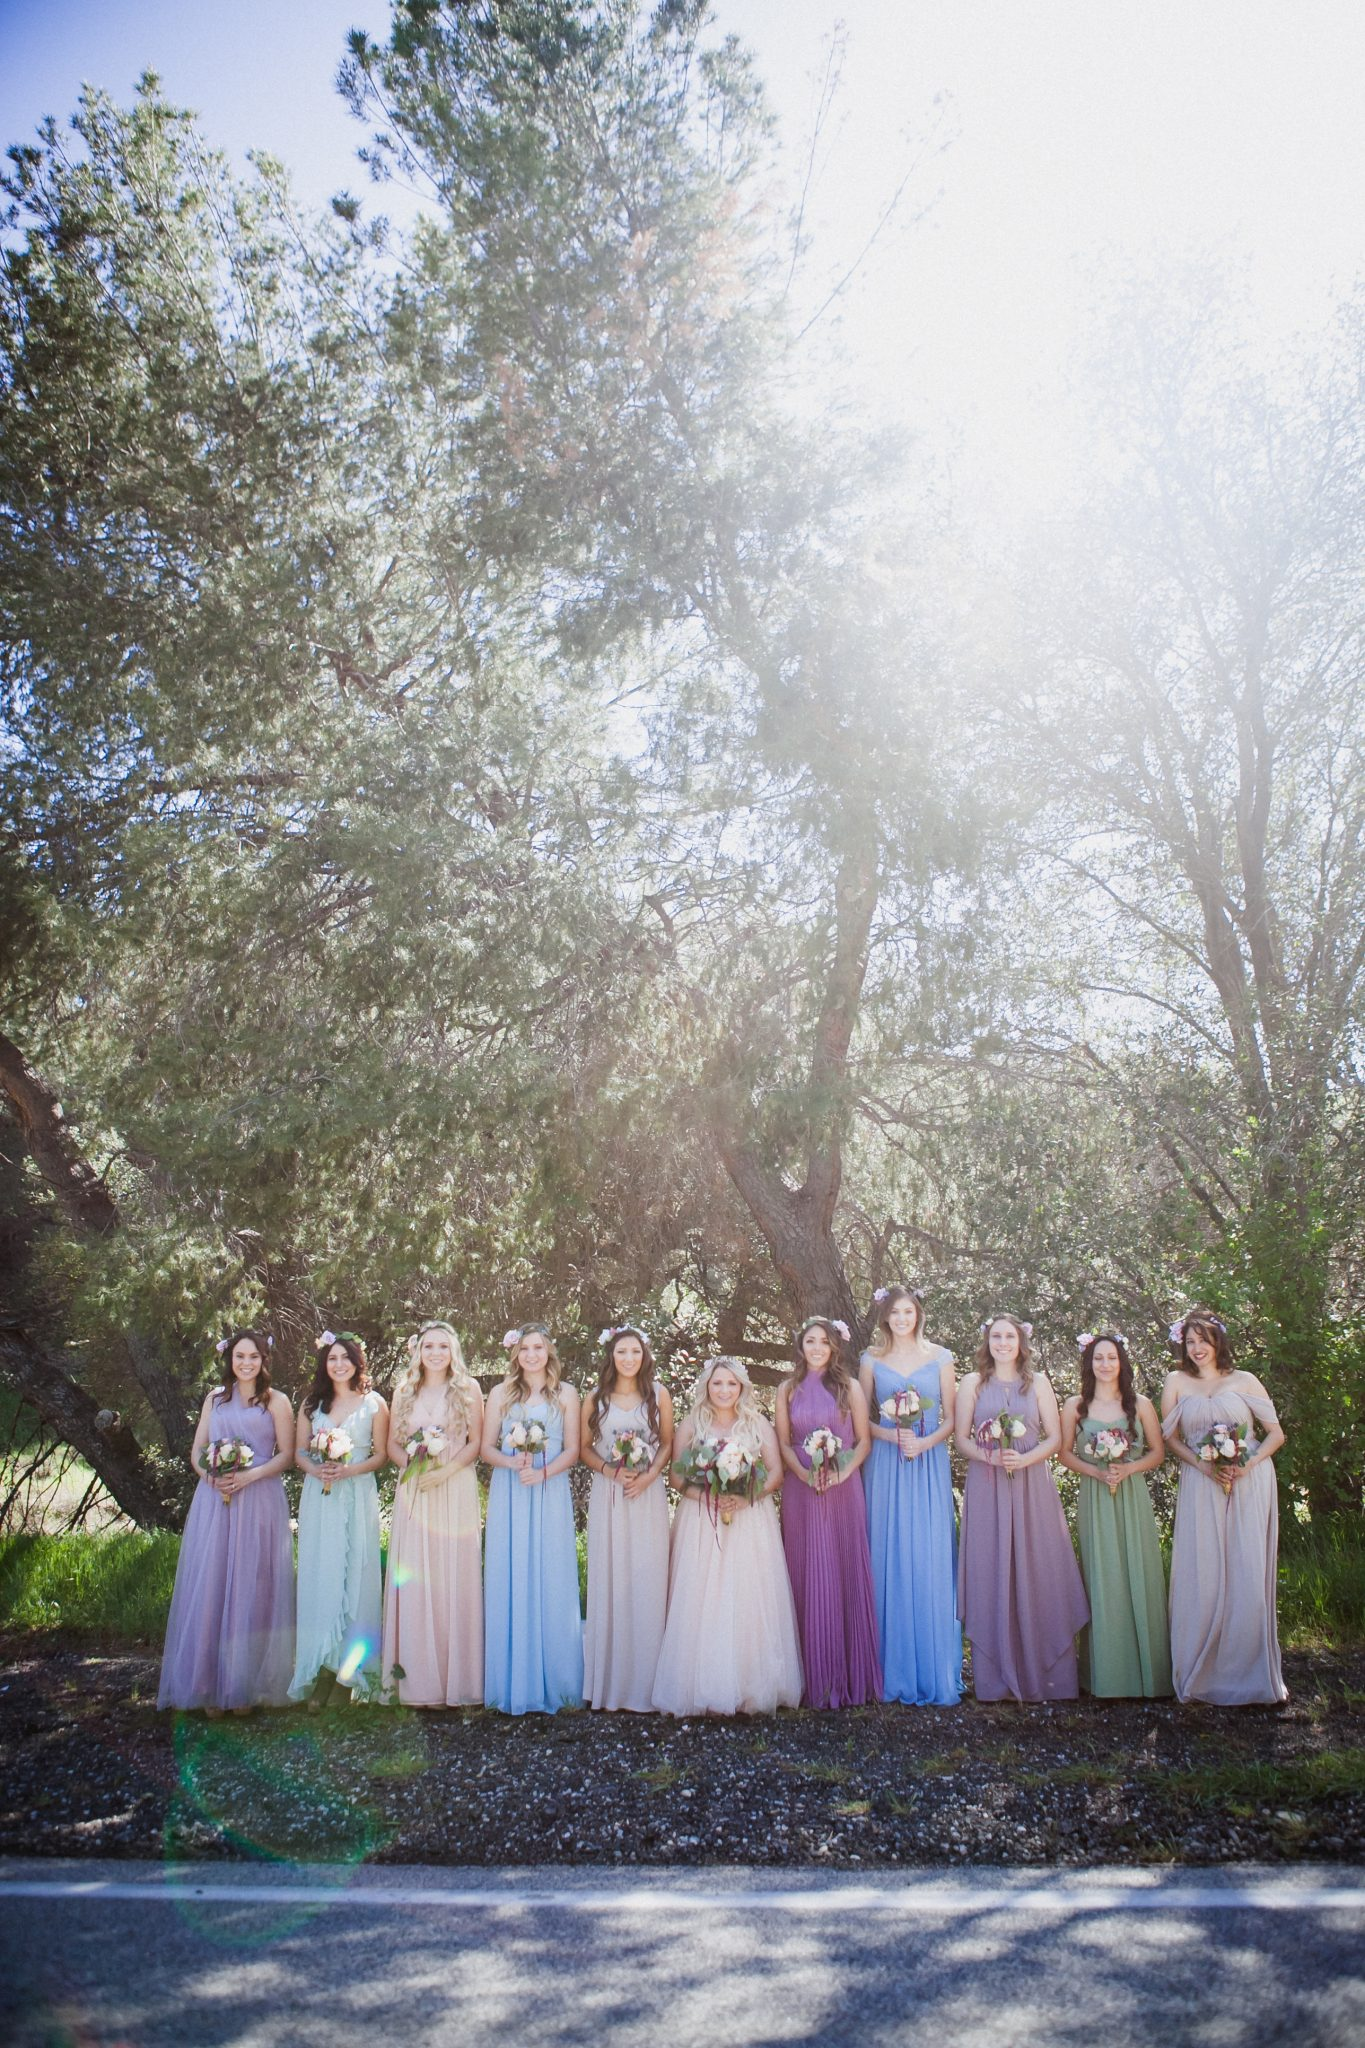 Rustic photo of bride and bridesmaids wearing different colored dresses